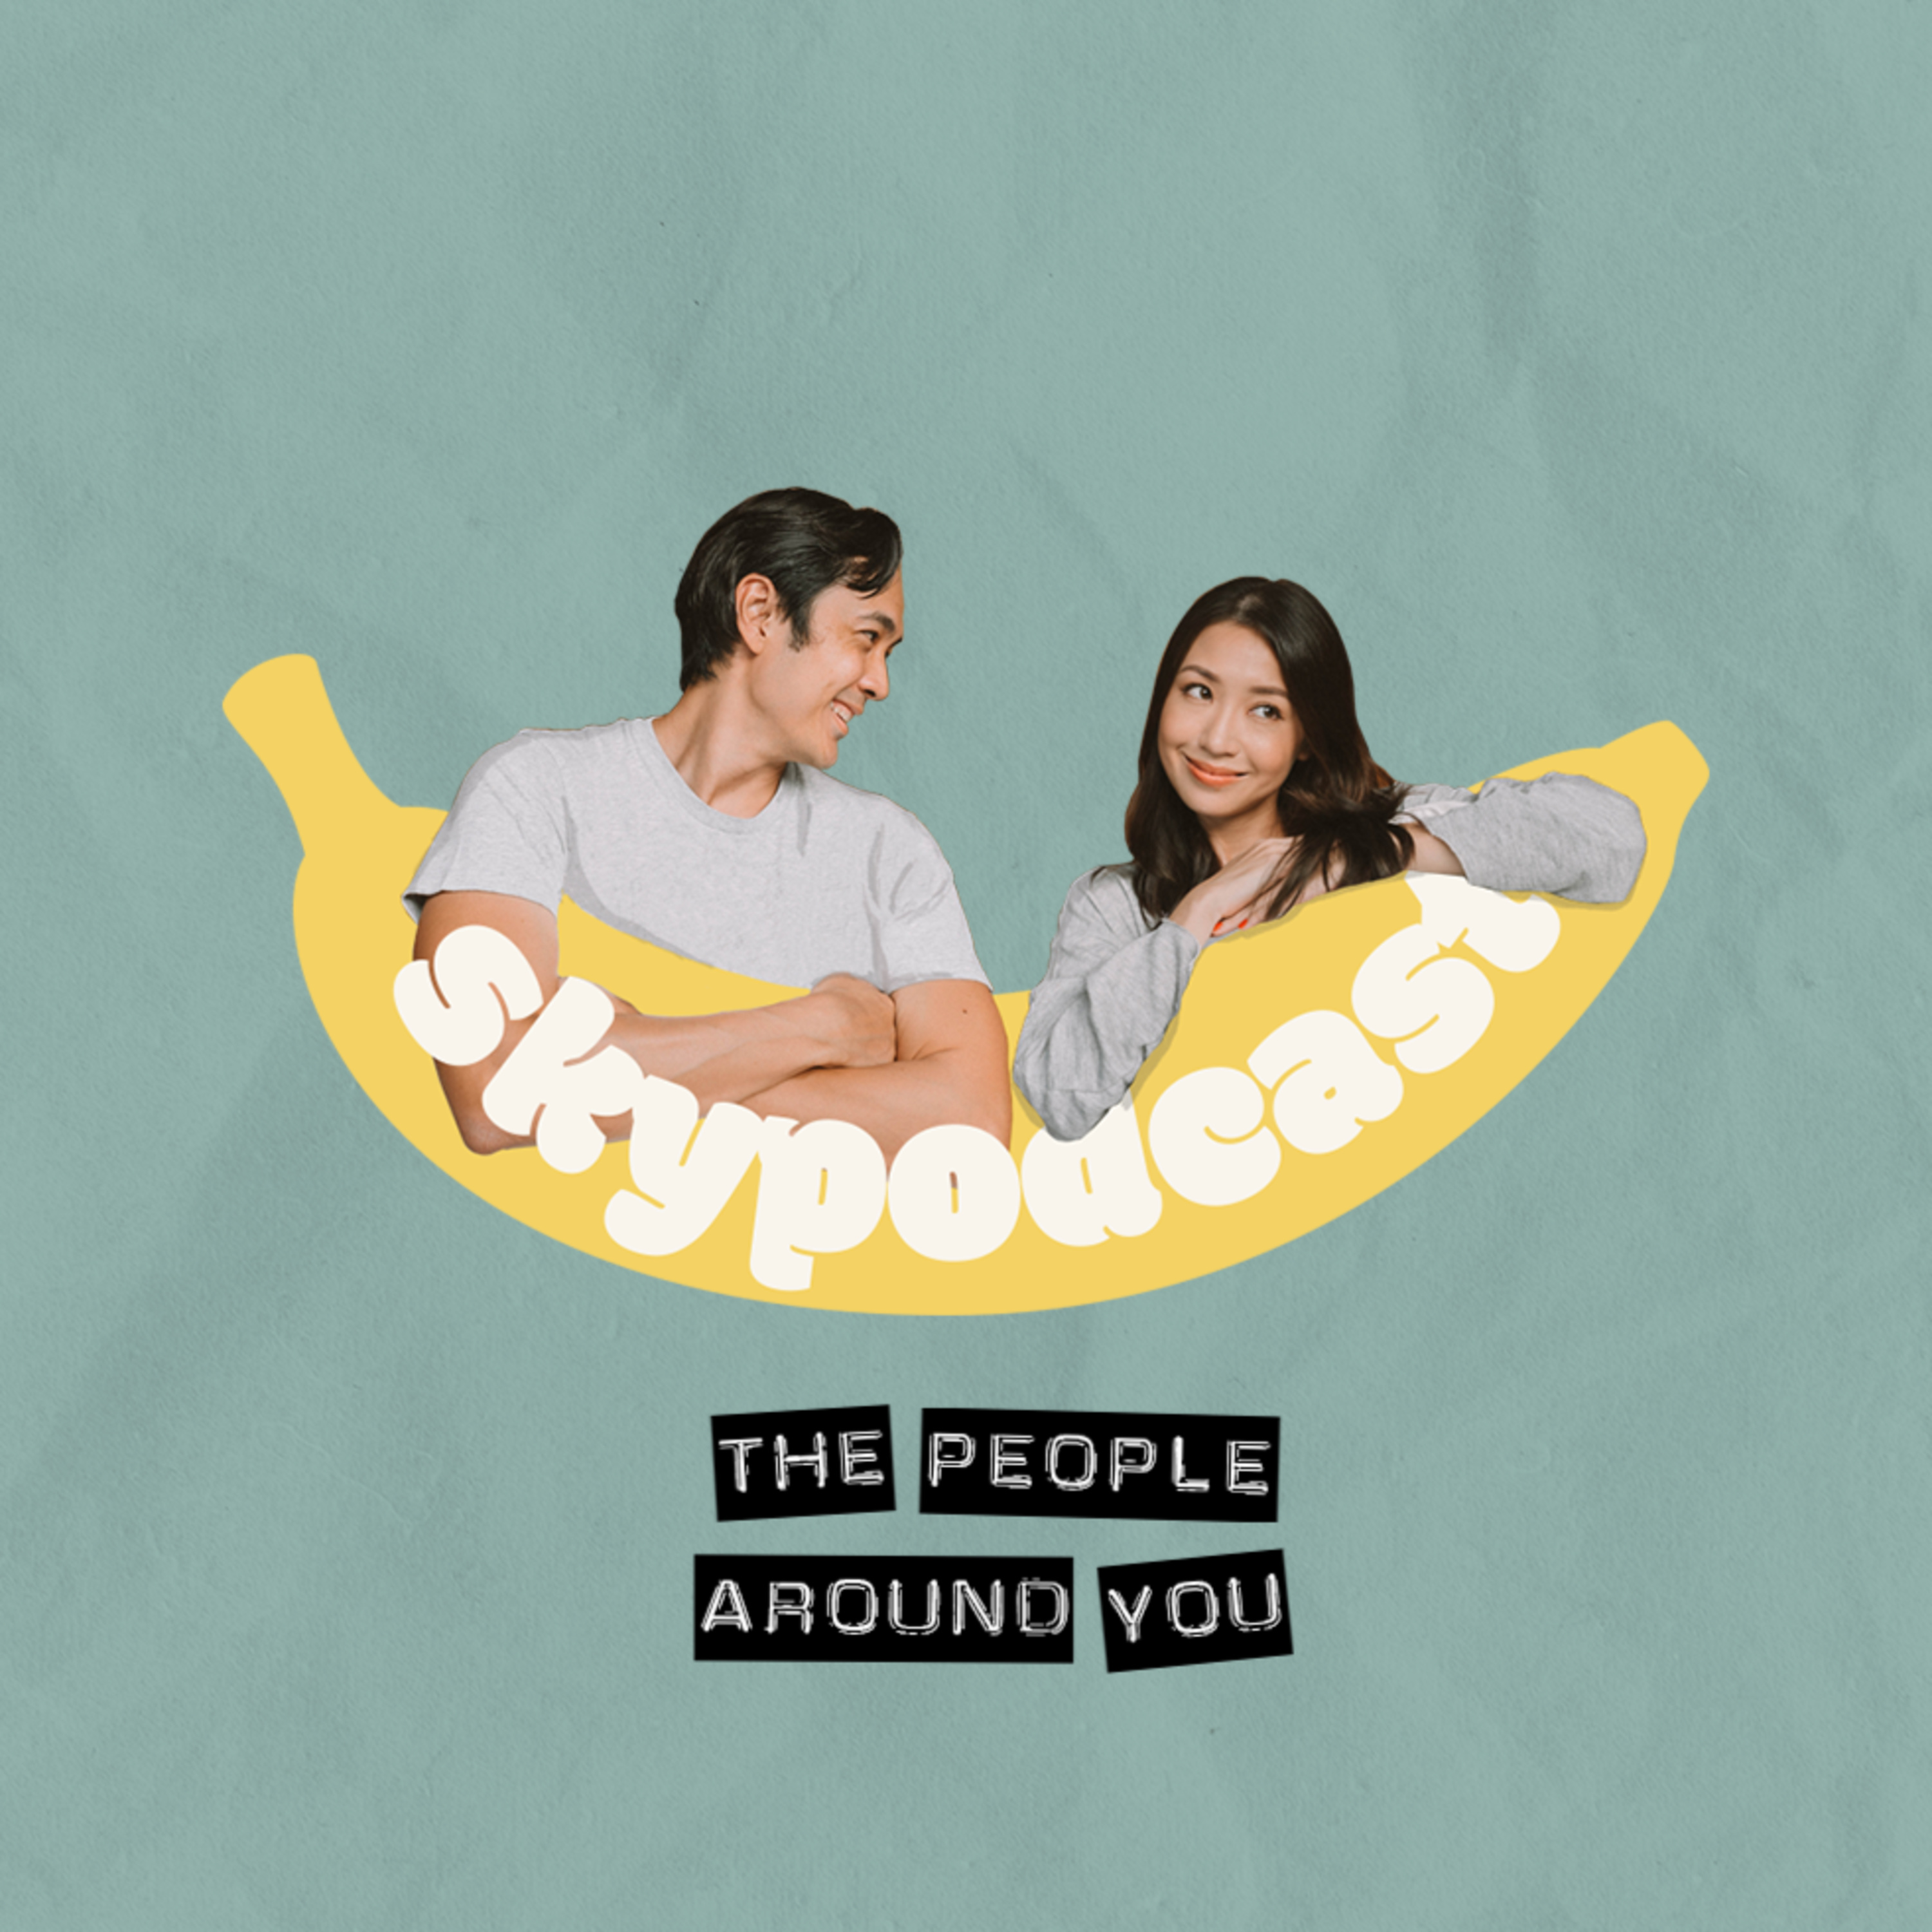 The People Around You